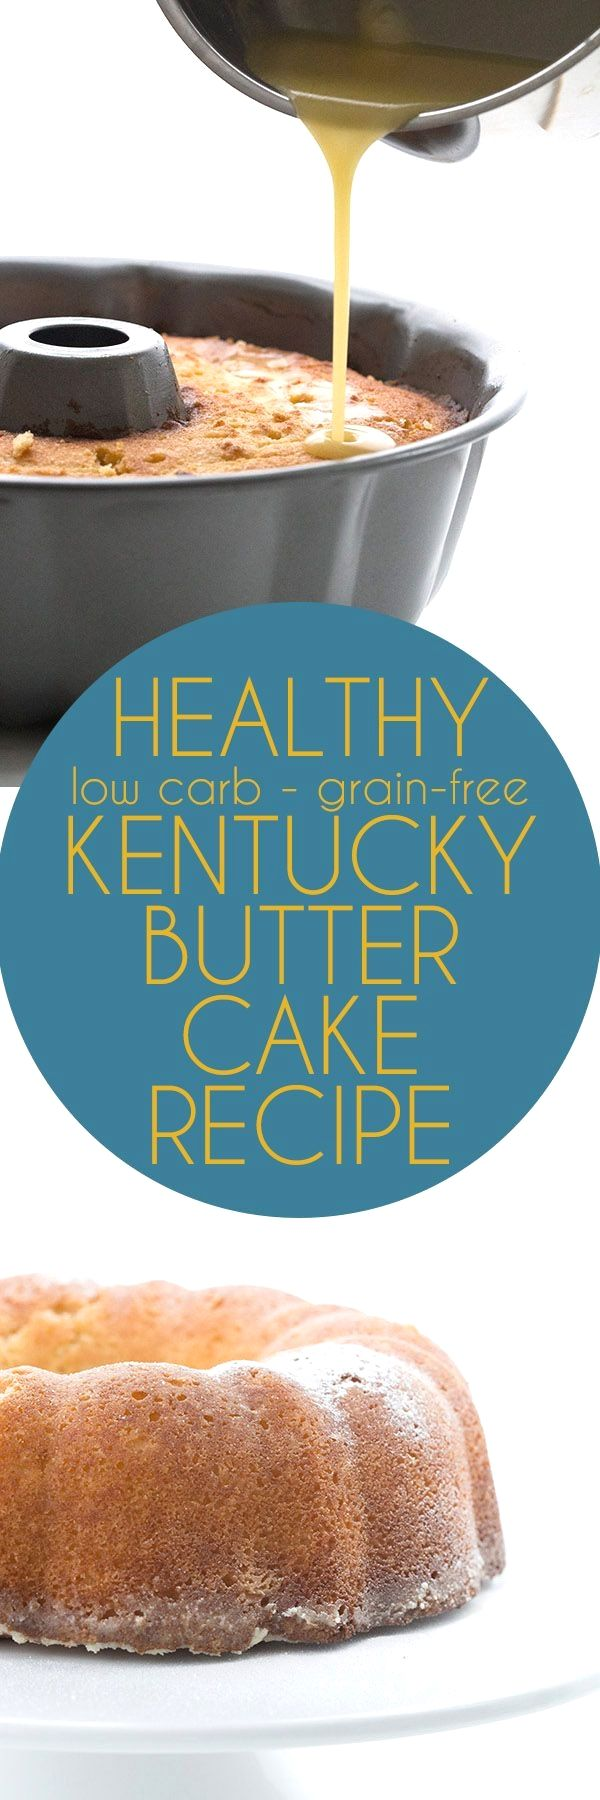 16 best Headbangers Kitchen images on Pinterest | Keto recipes ...